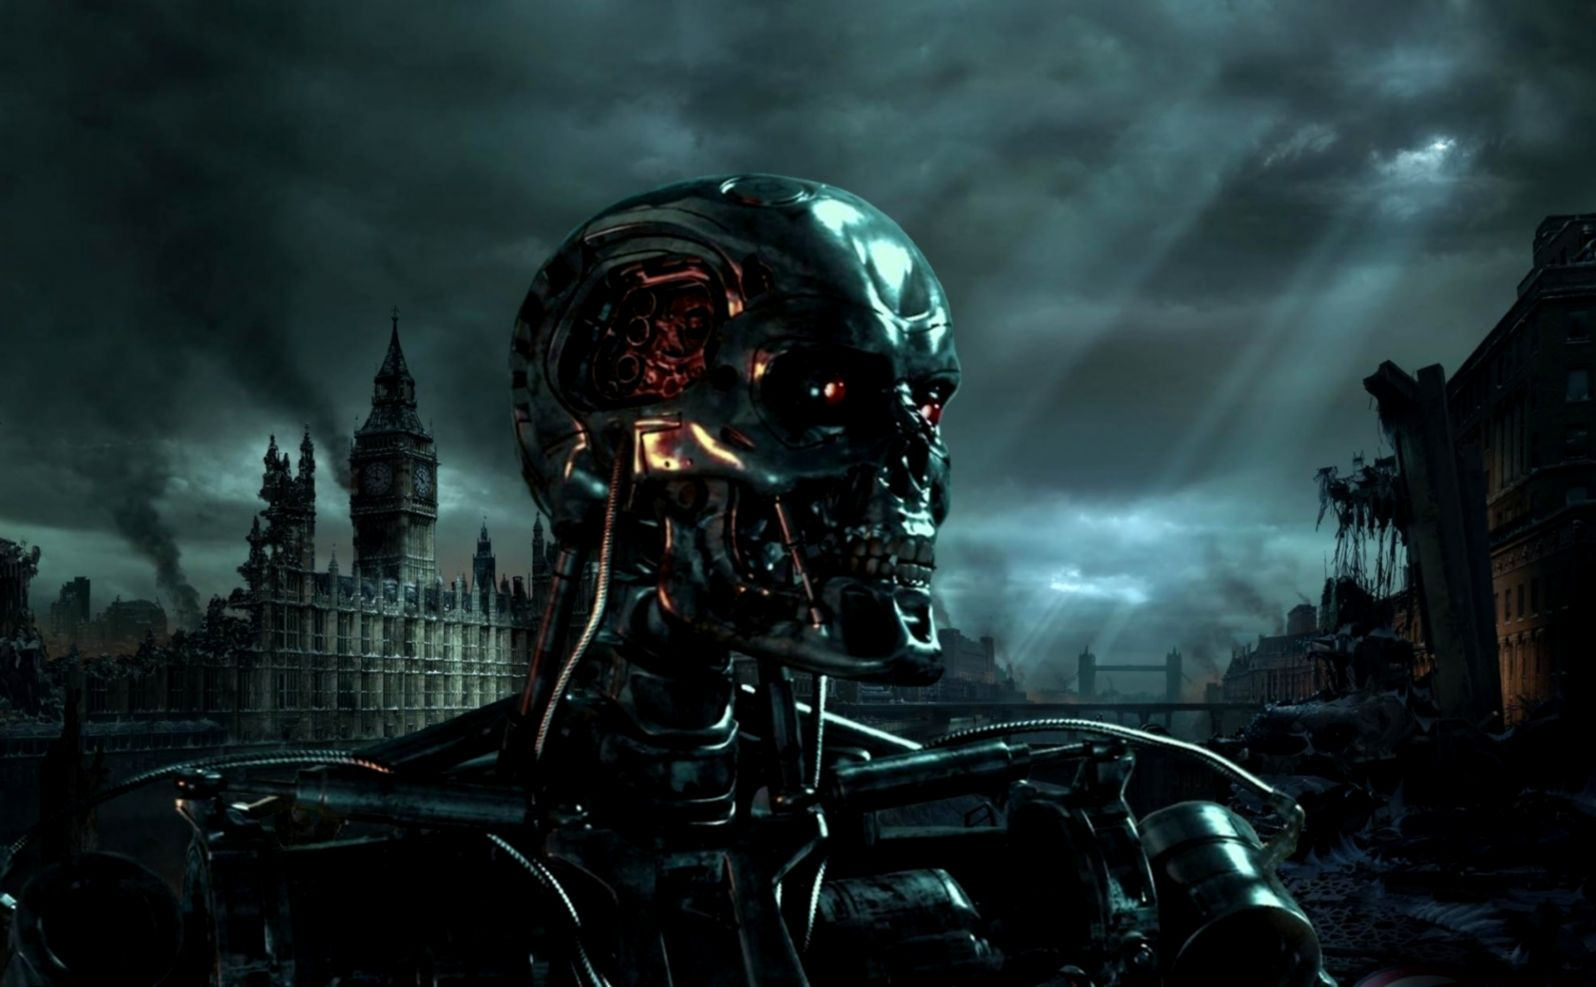 Terminator Skull Wallpaper Genius Wallpapers